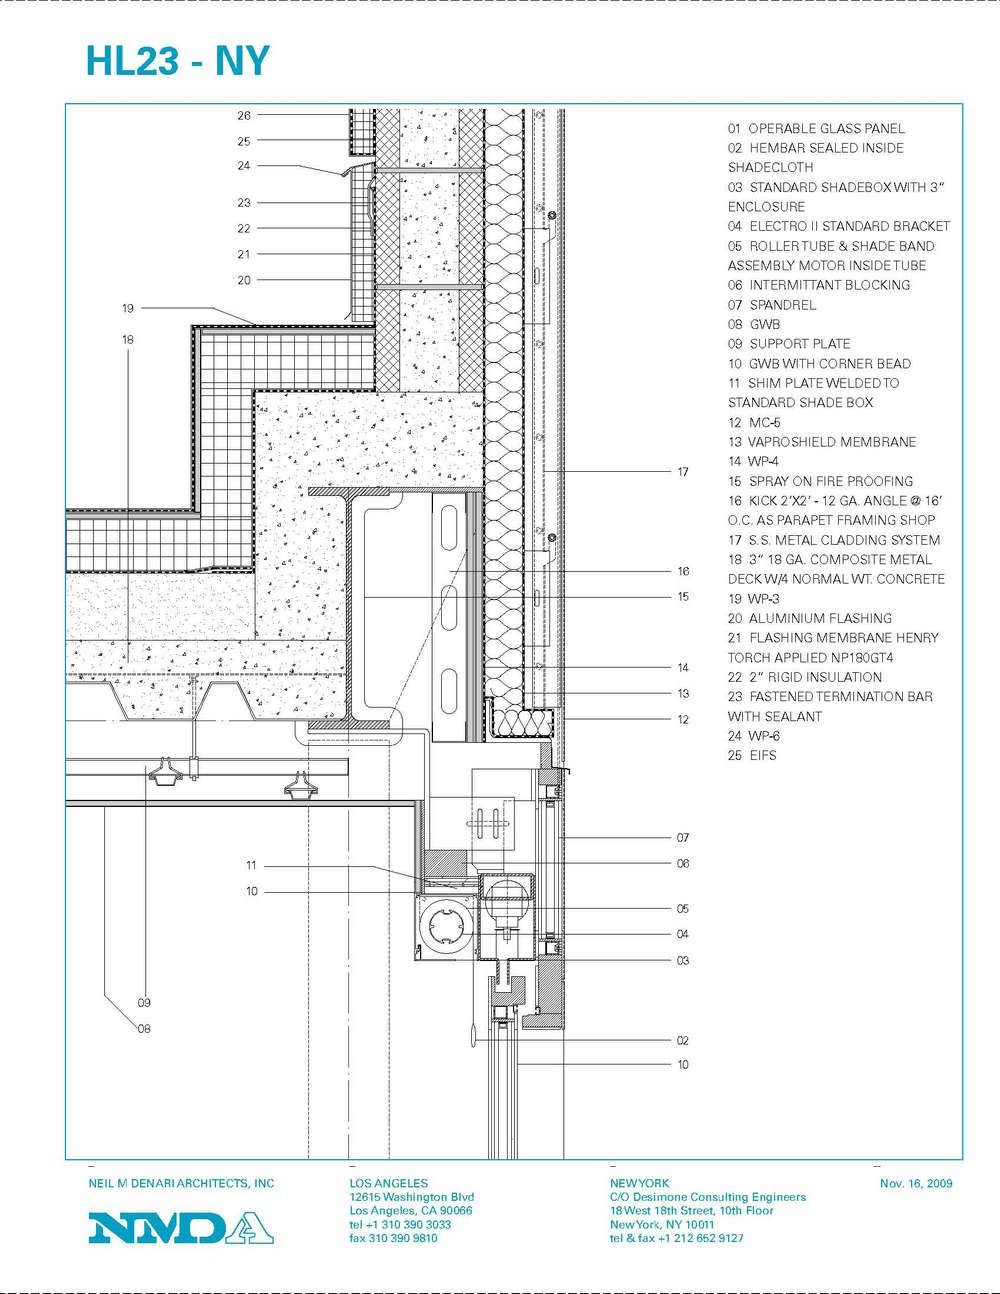 Auto cad drawings flat roof with parapet wall detail - Find This Pin And More On Construction By Jonnief